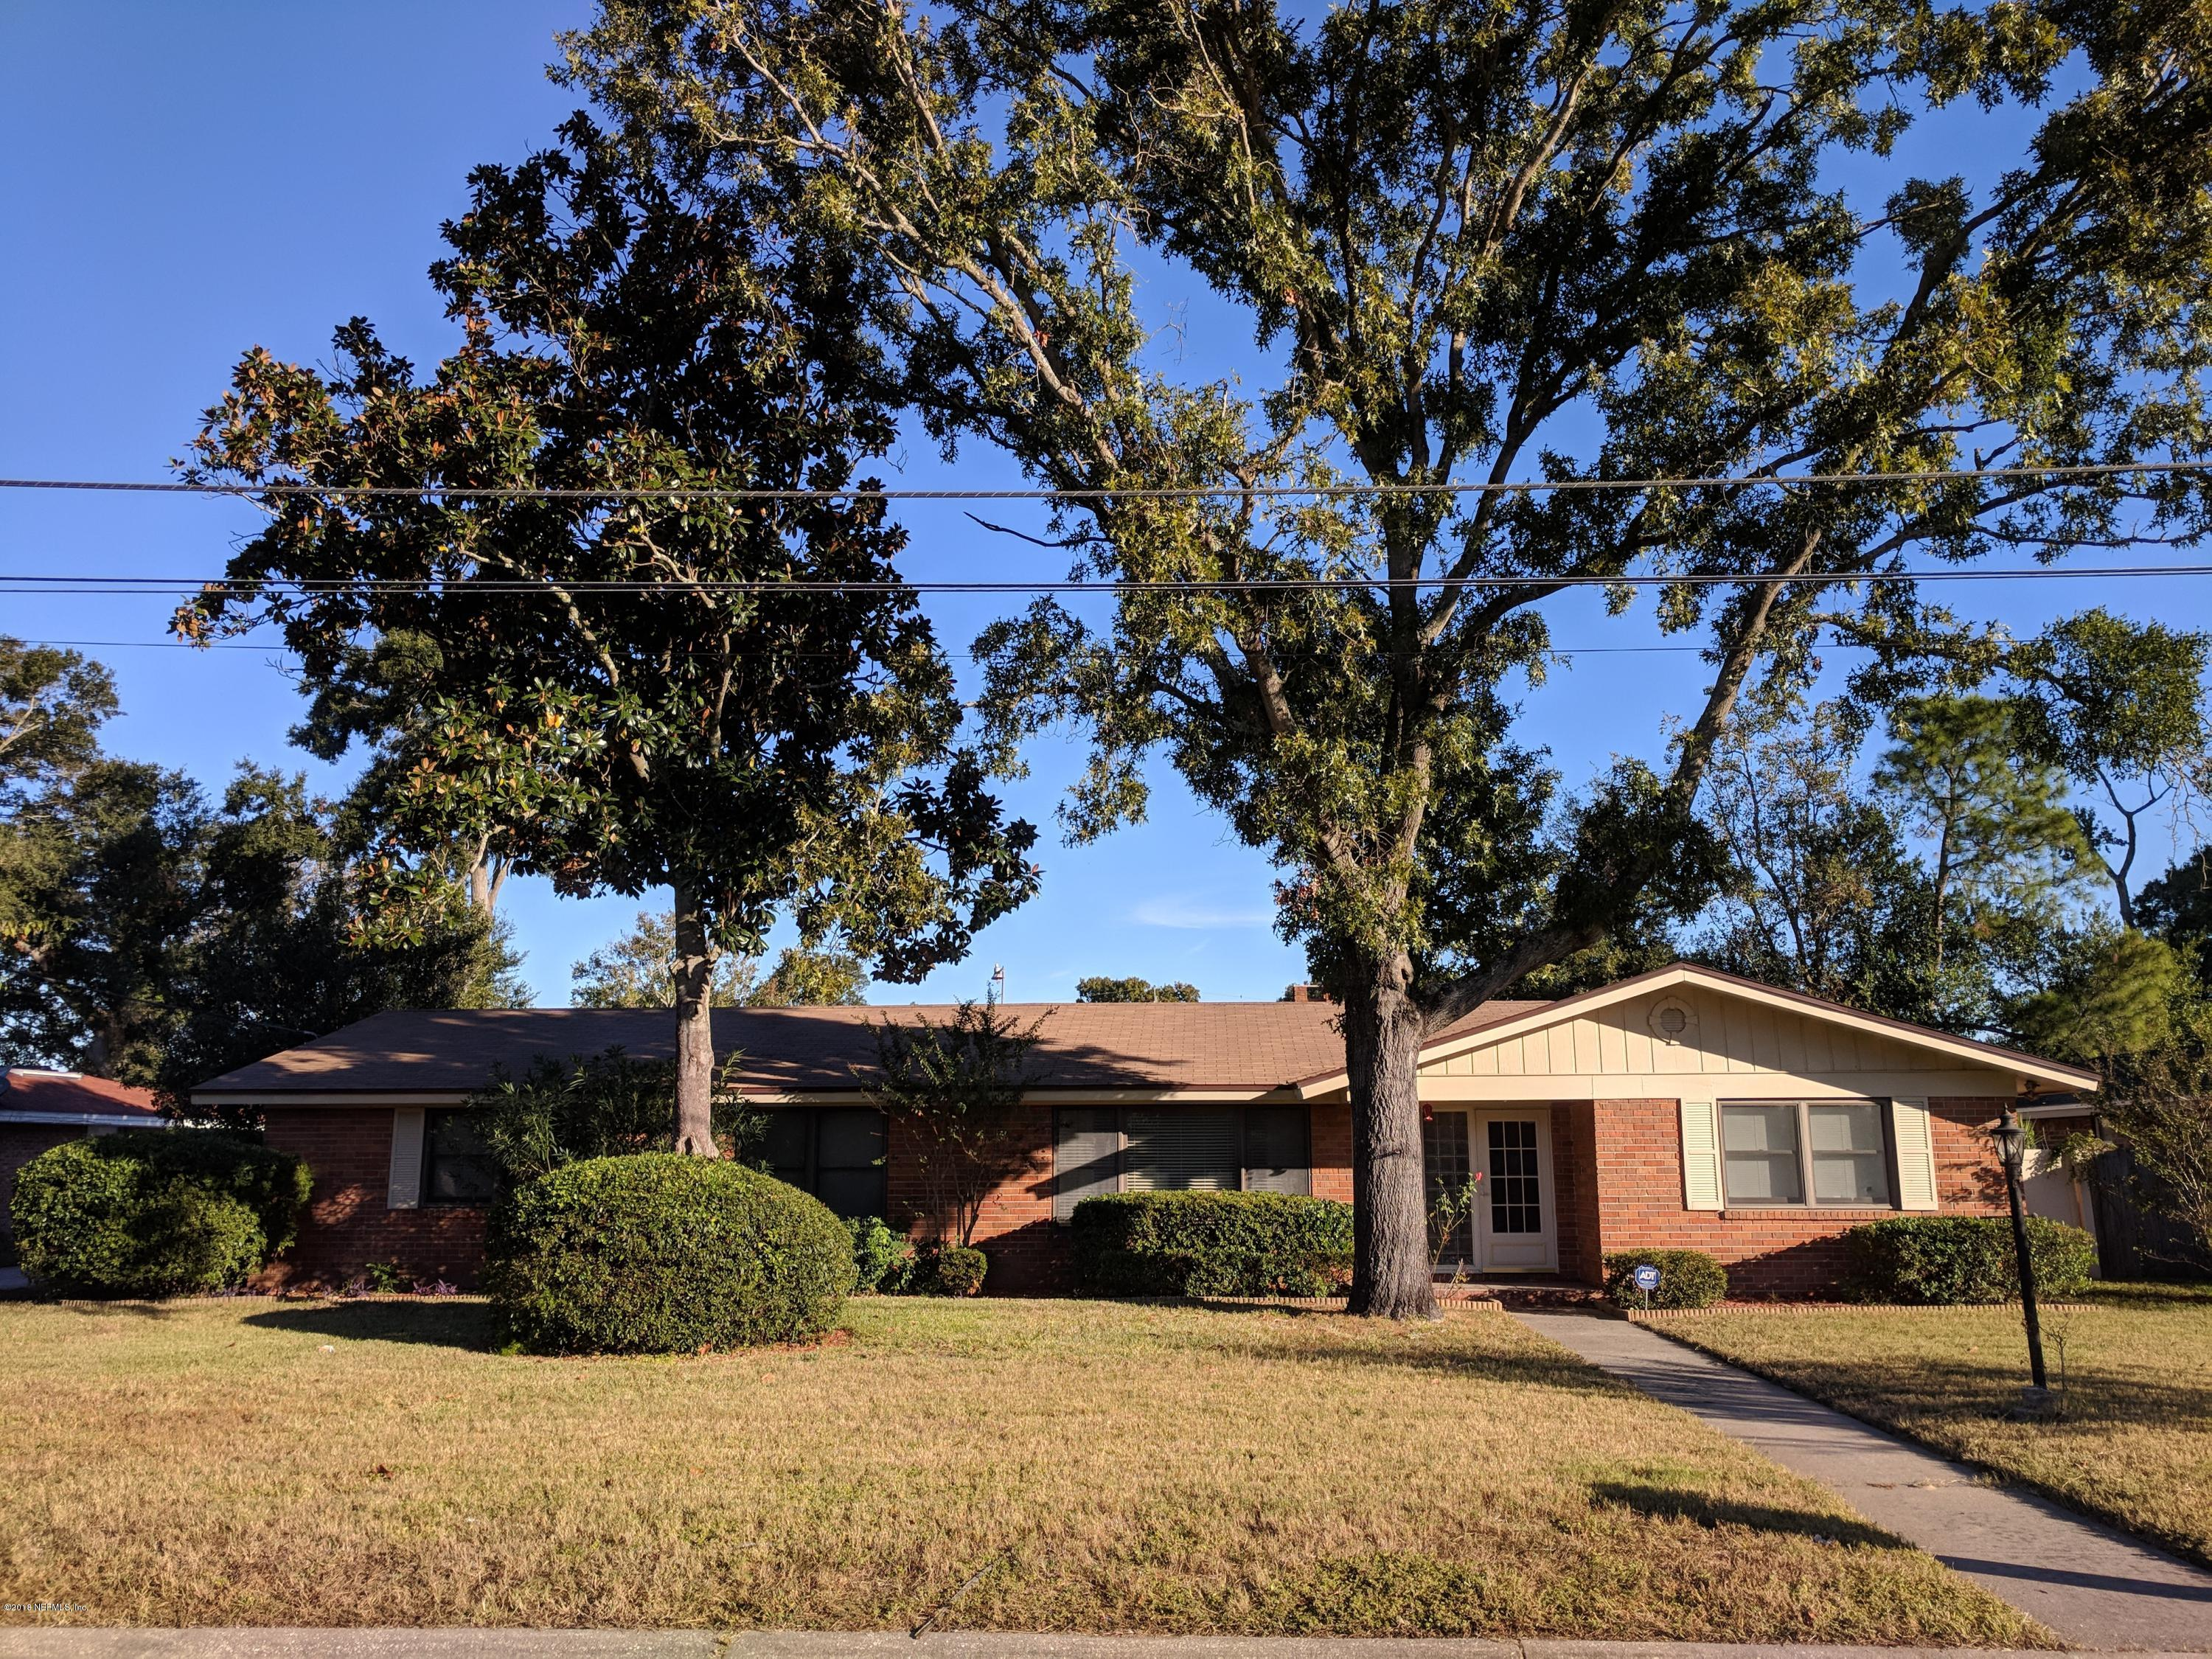 7307 MAPLE TREE, JACKSONVILLE, FLORIDA 32277, 4 Bedrooms Bedrooms, ,3 BathroomsBathrooms,Residential - single family,For sale,MAPLE TREE,965140